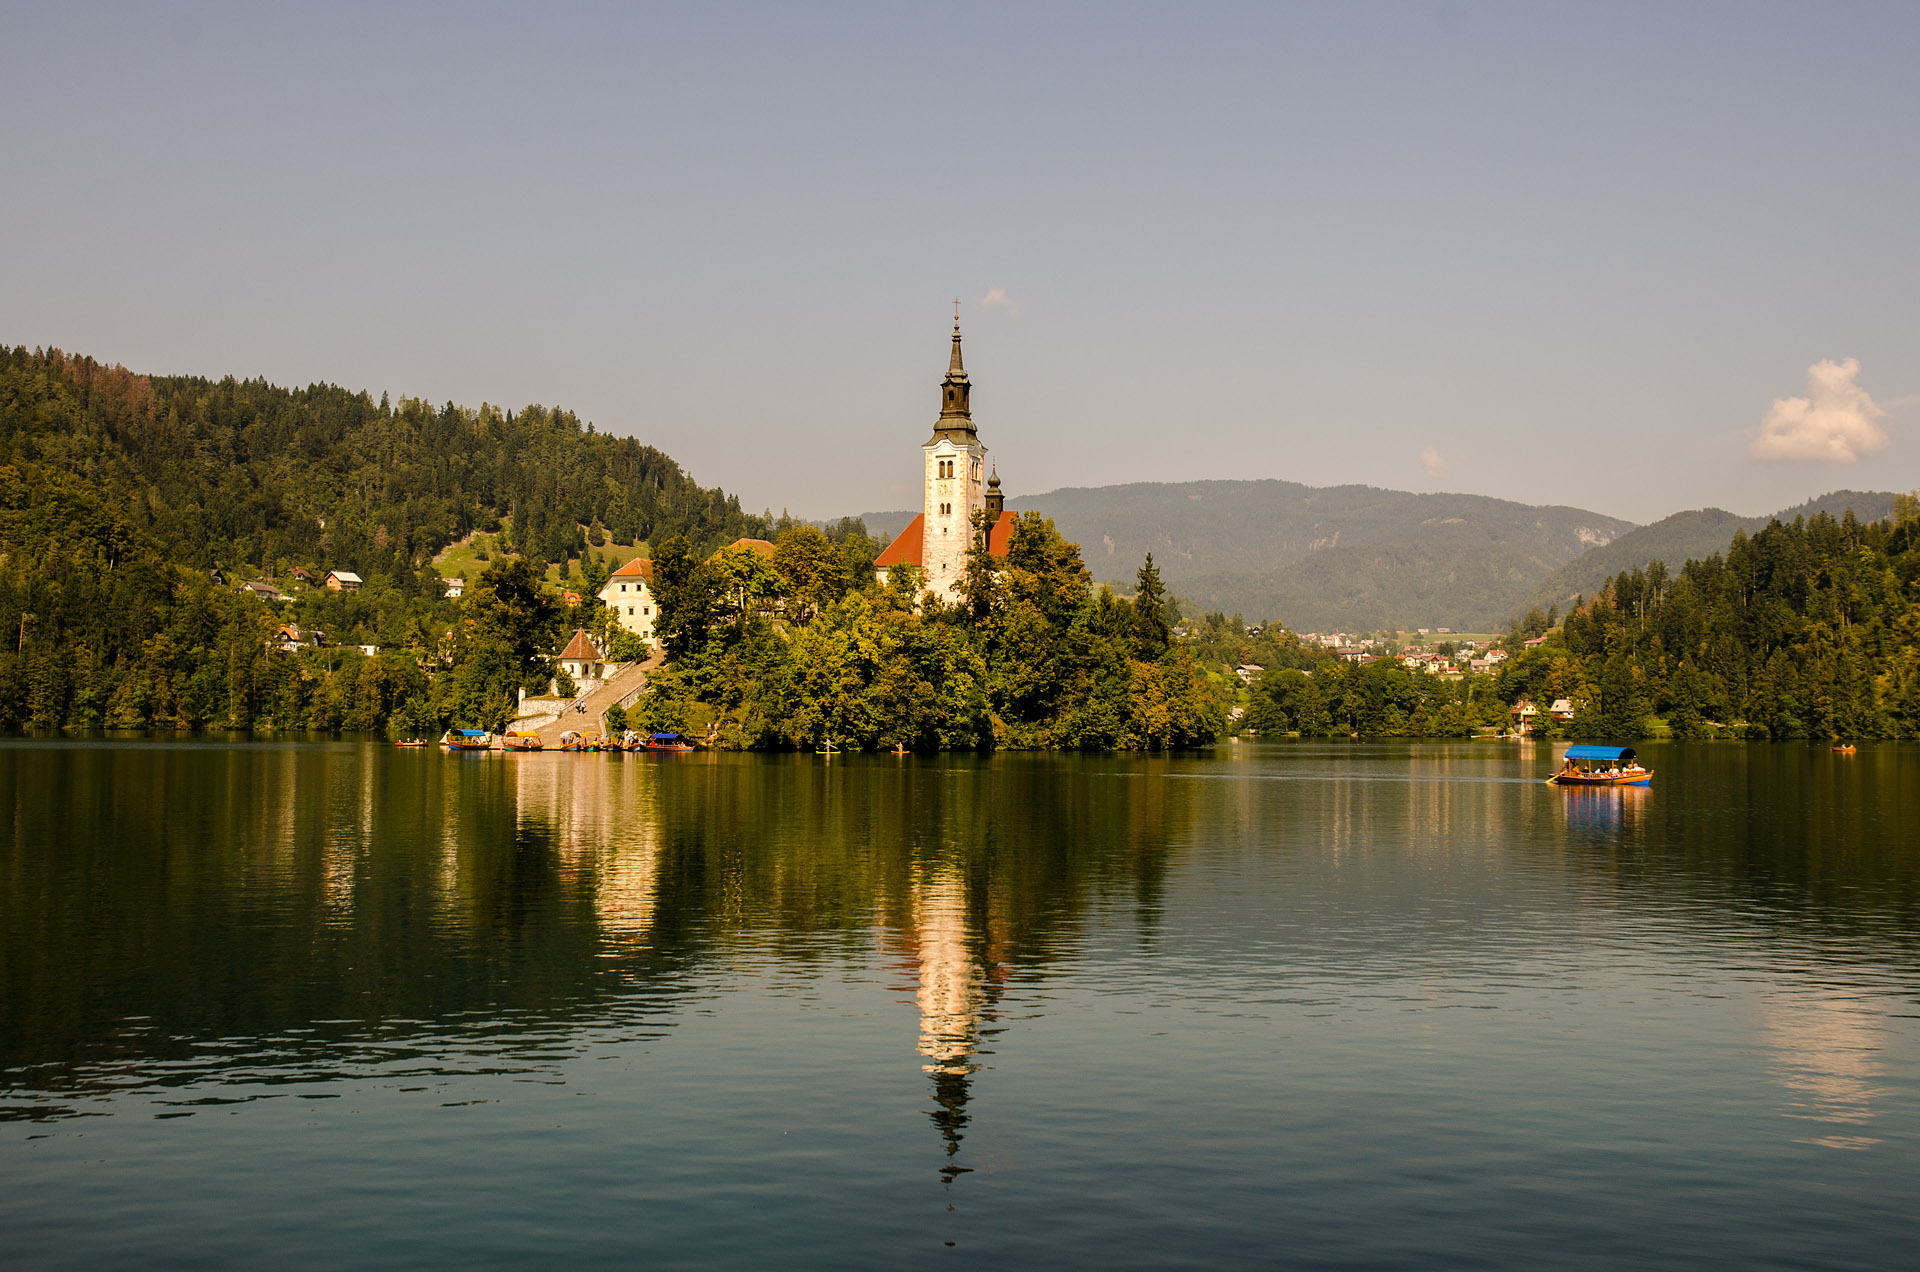 Bled Island & Assumption of Mary Church